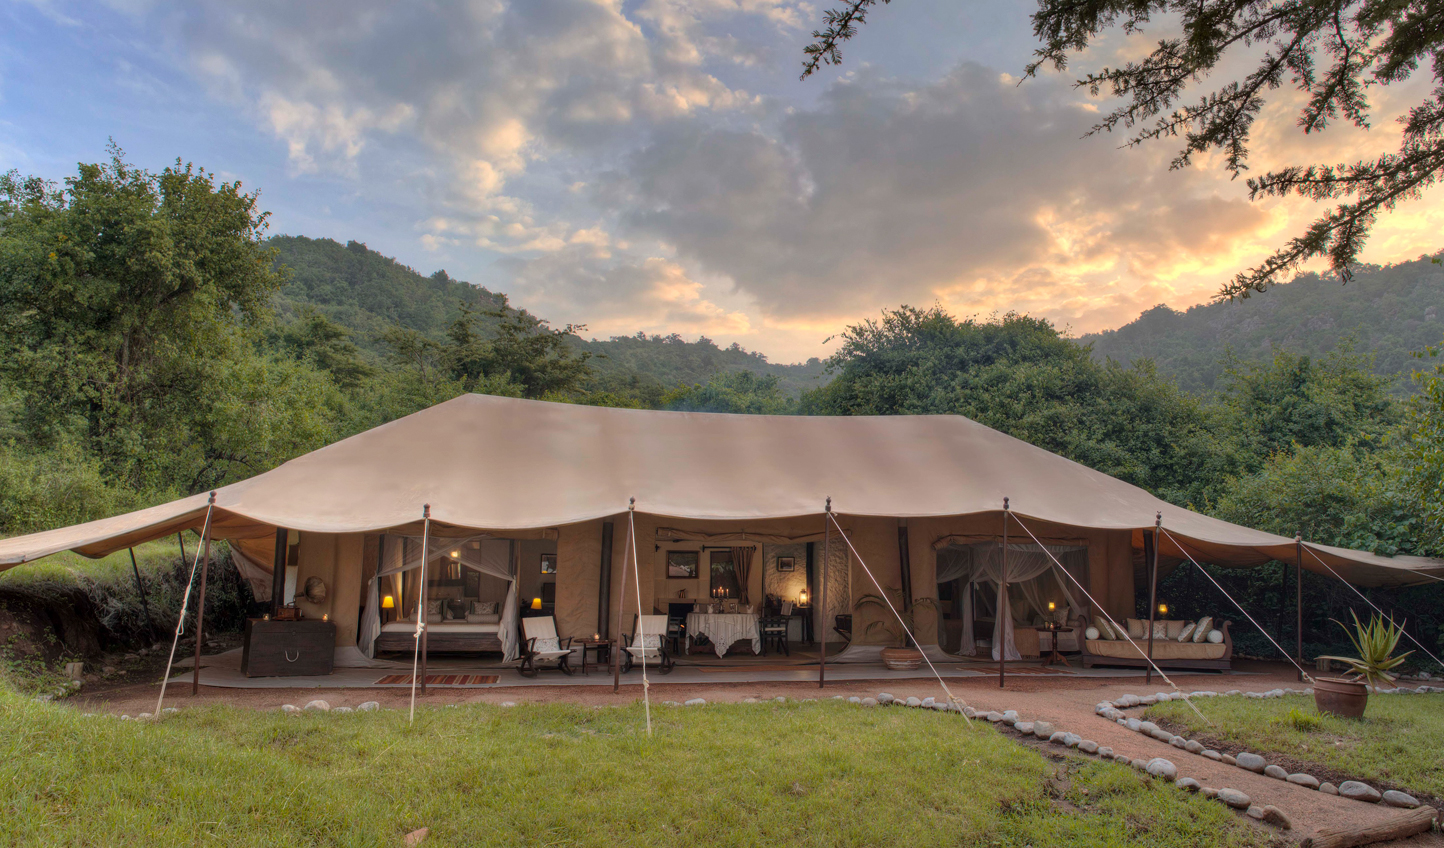 Luxurious canvas tents promise a good night's sleep